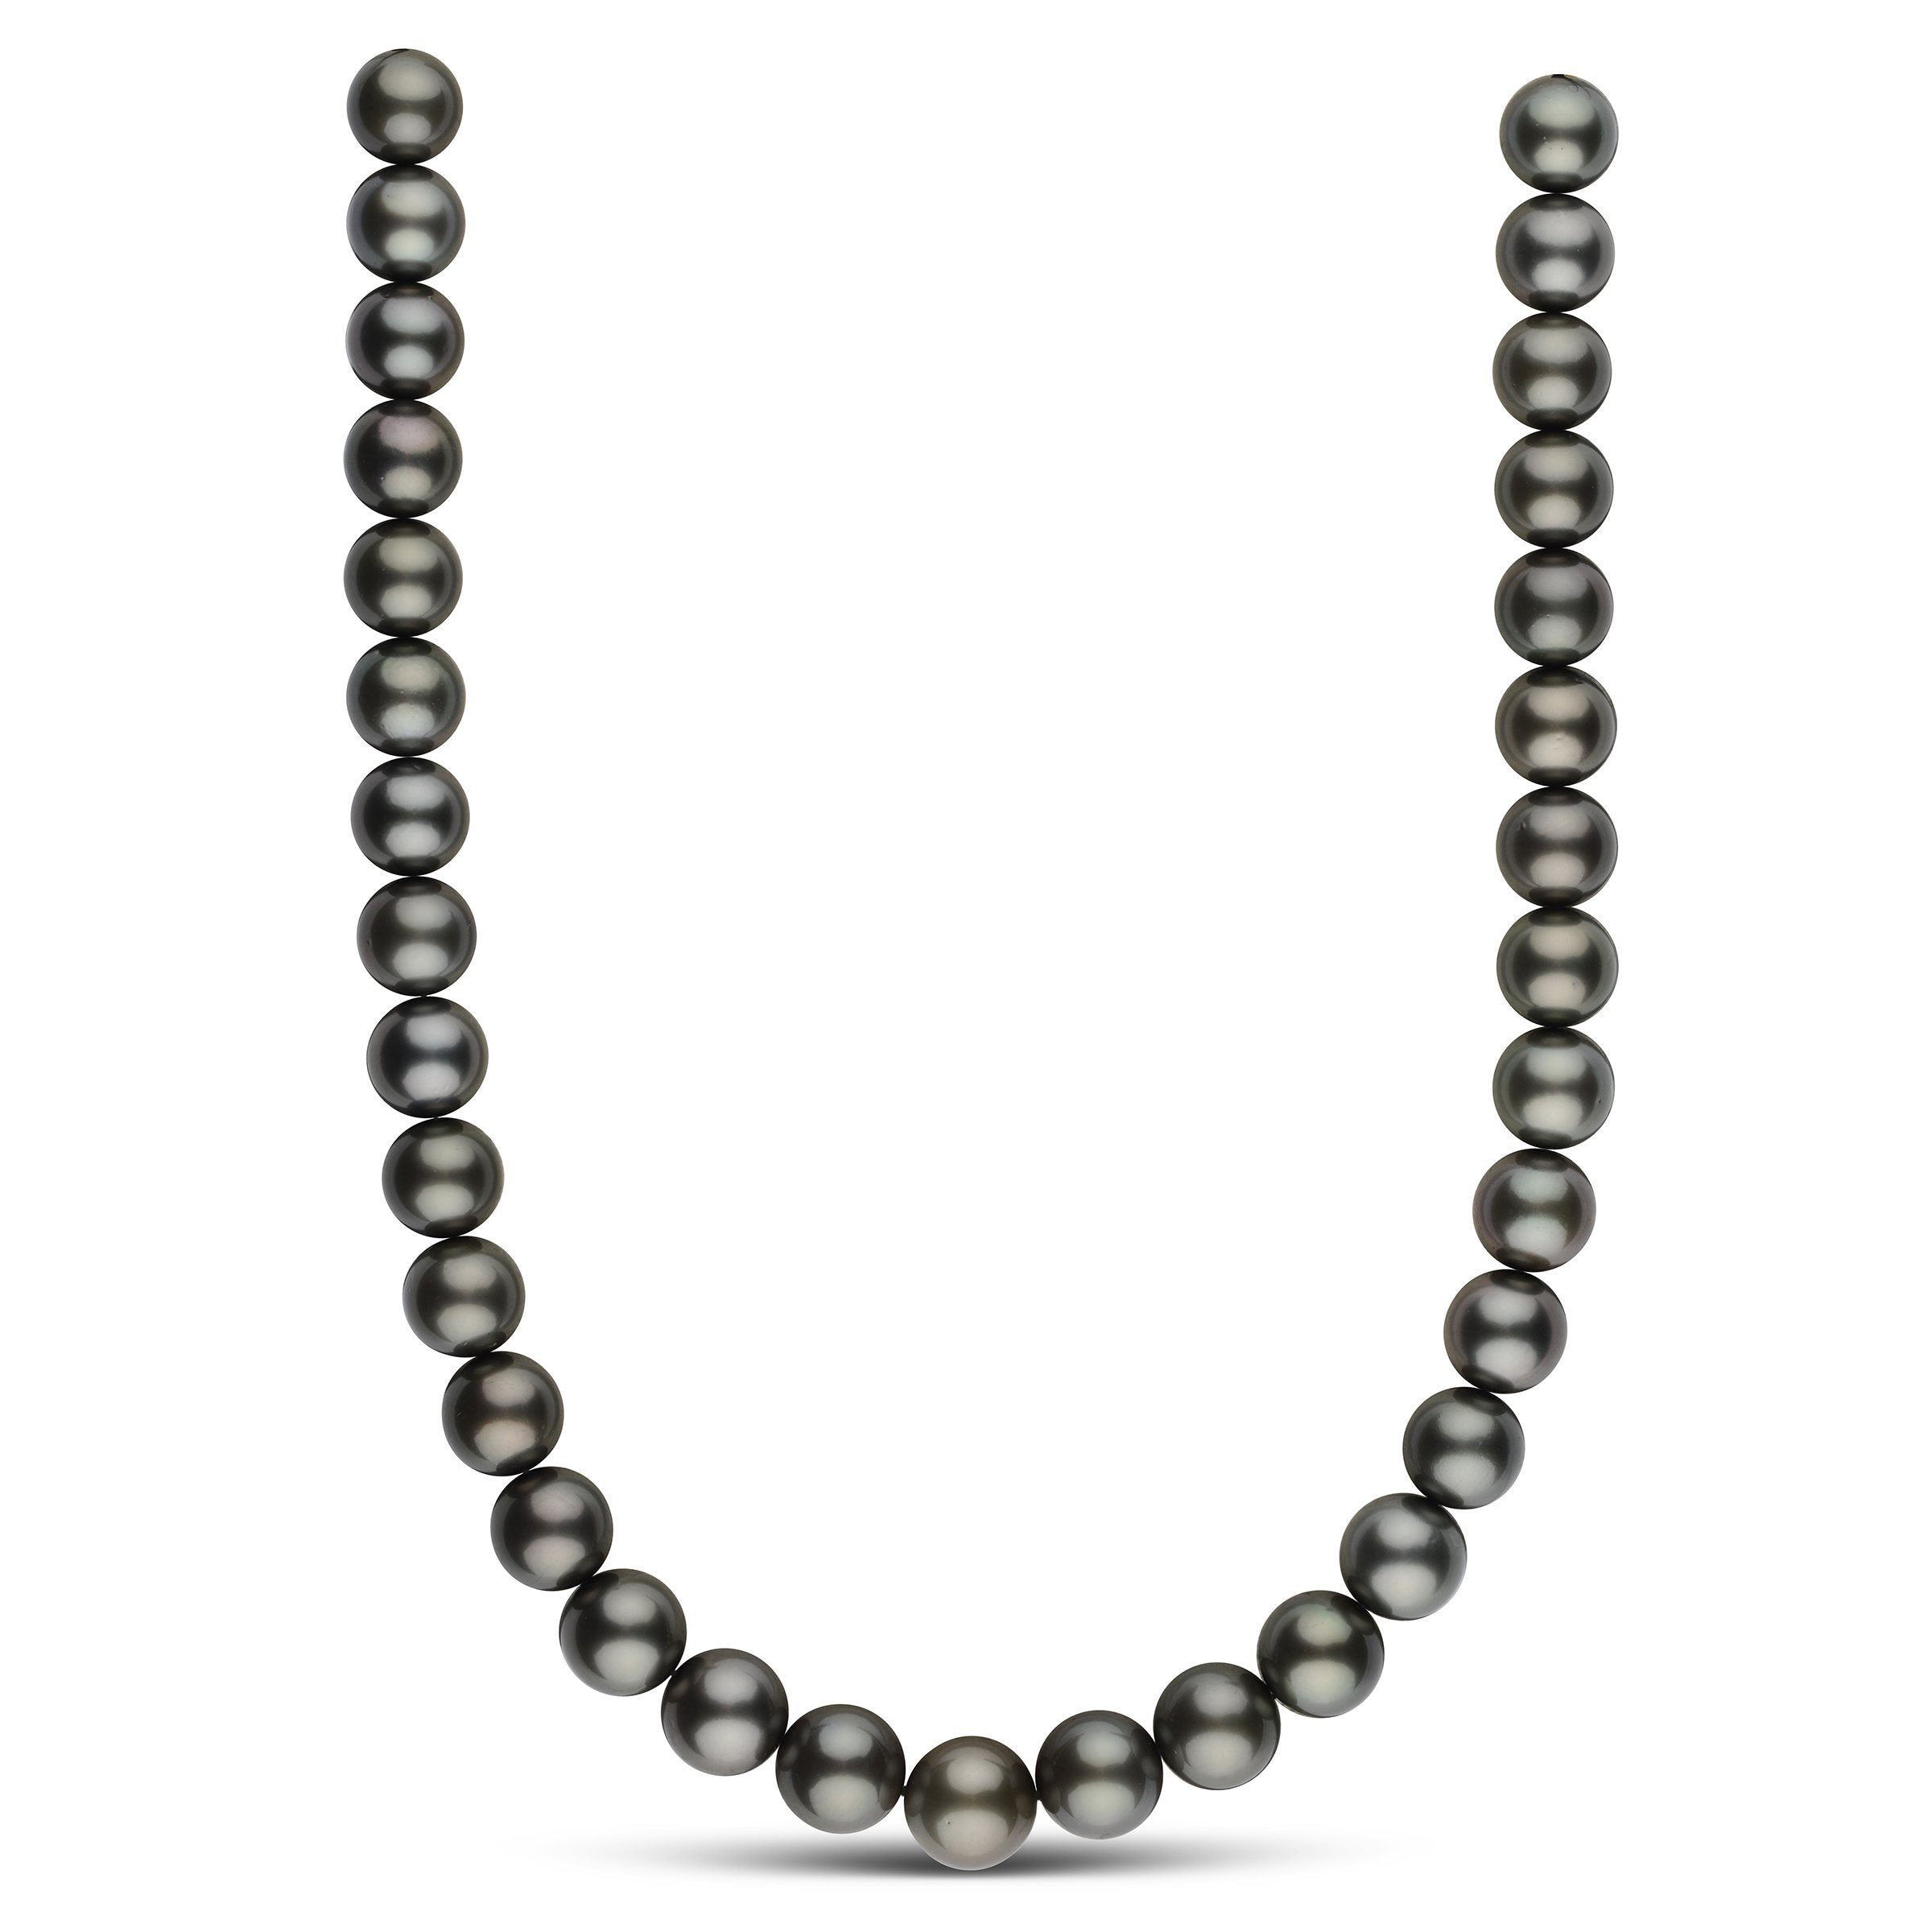 12.0-13.7 mm AA+/AAA Round Tahitian Pearl Necklace